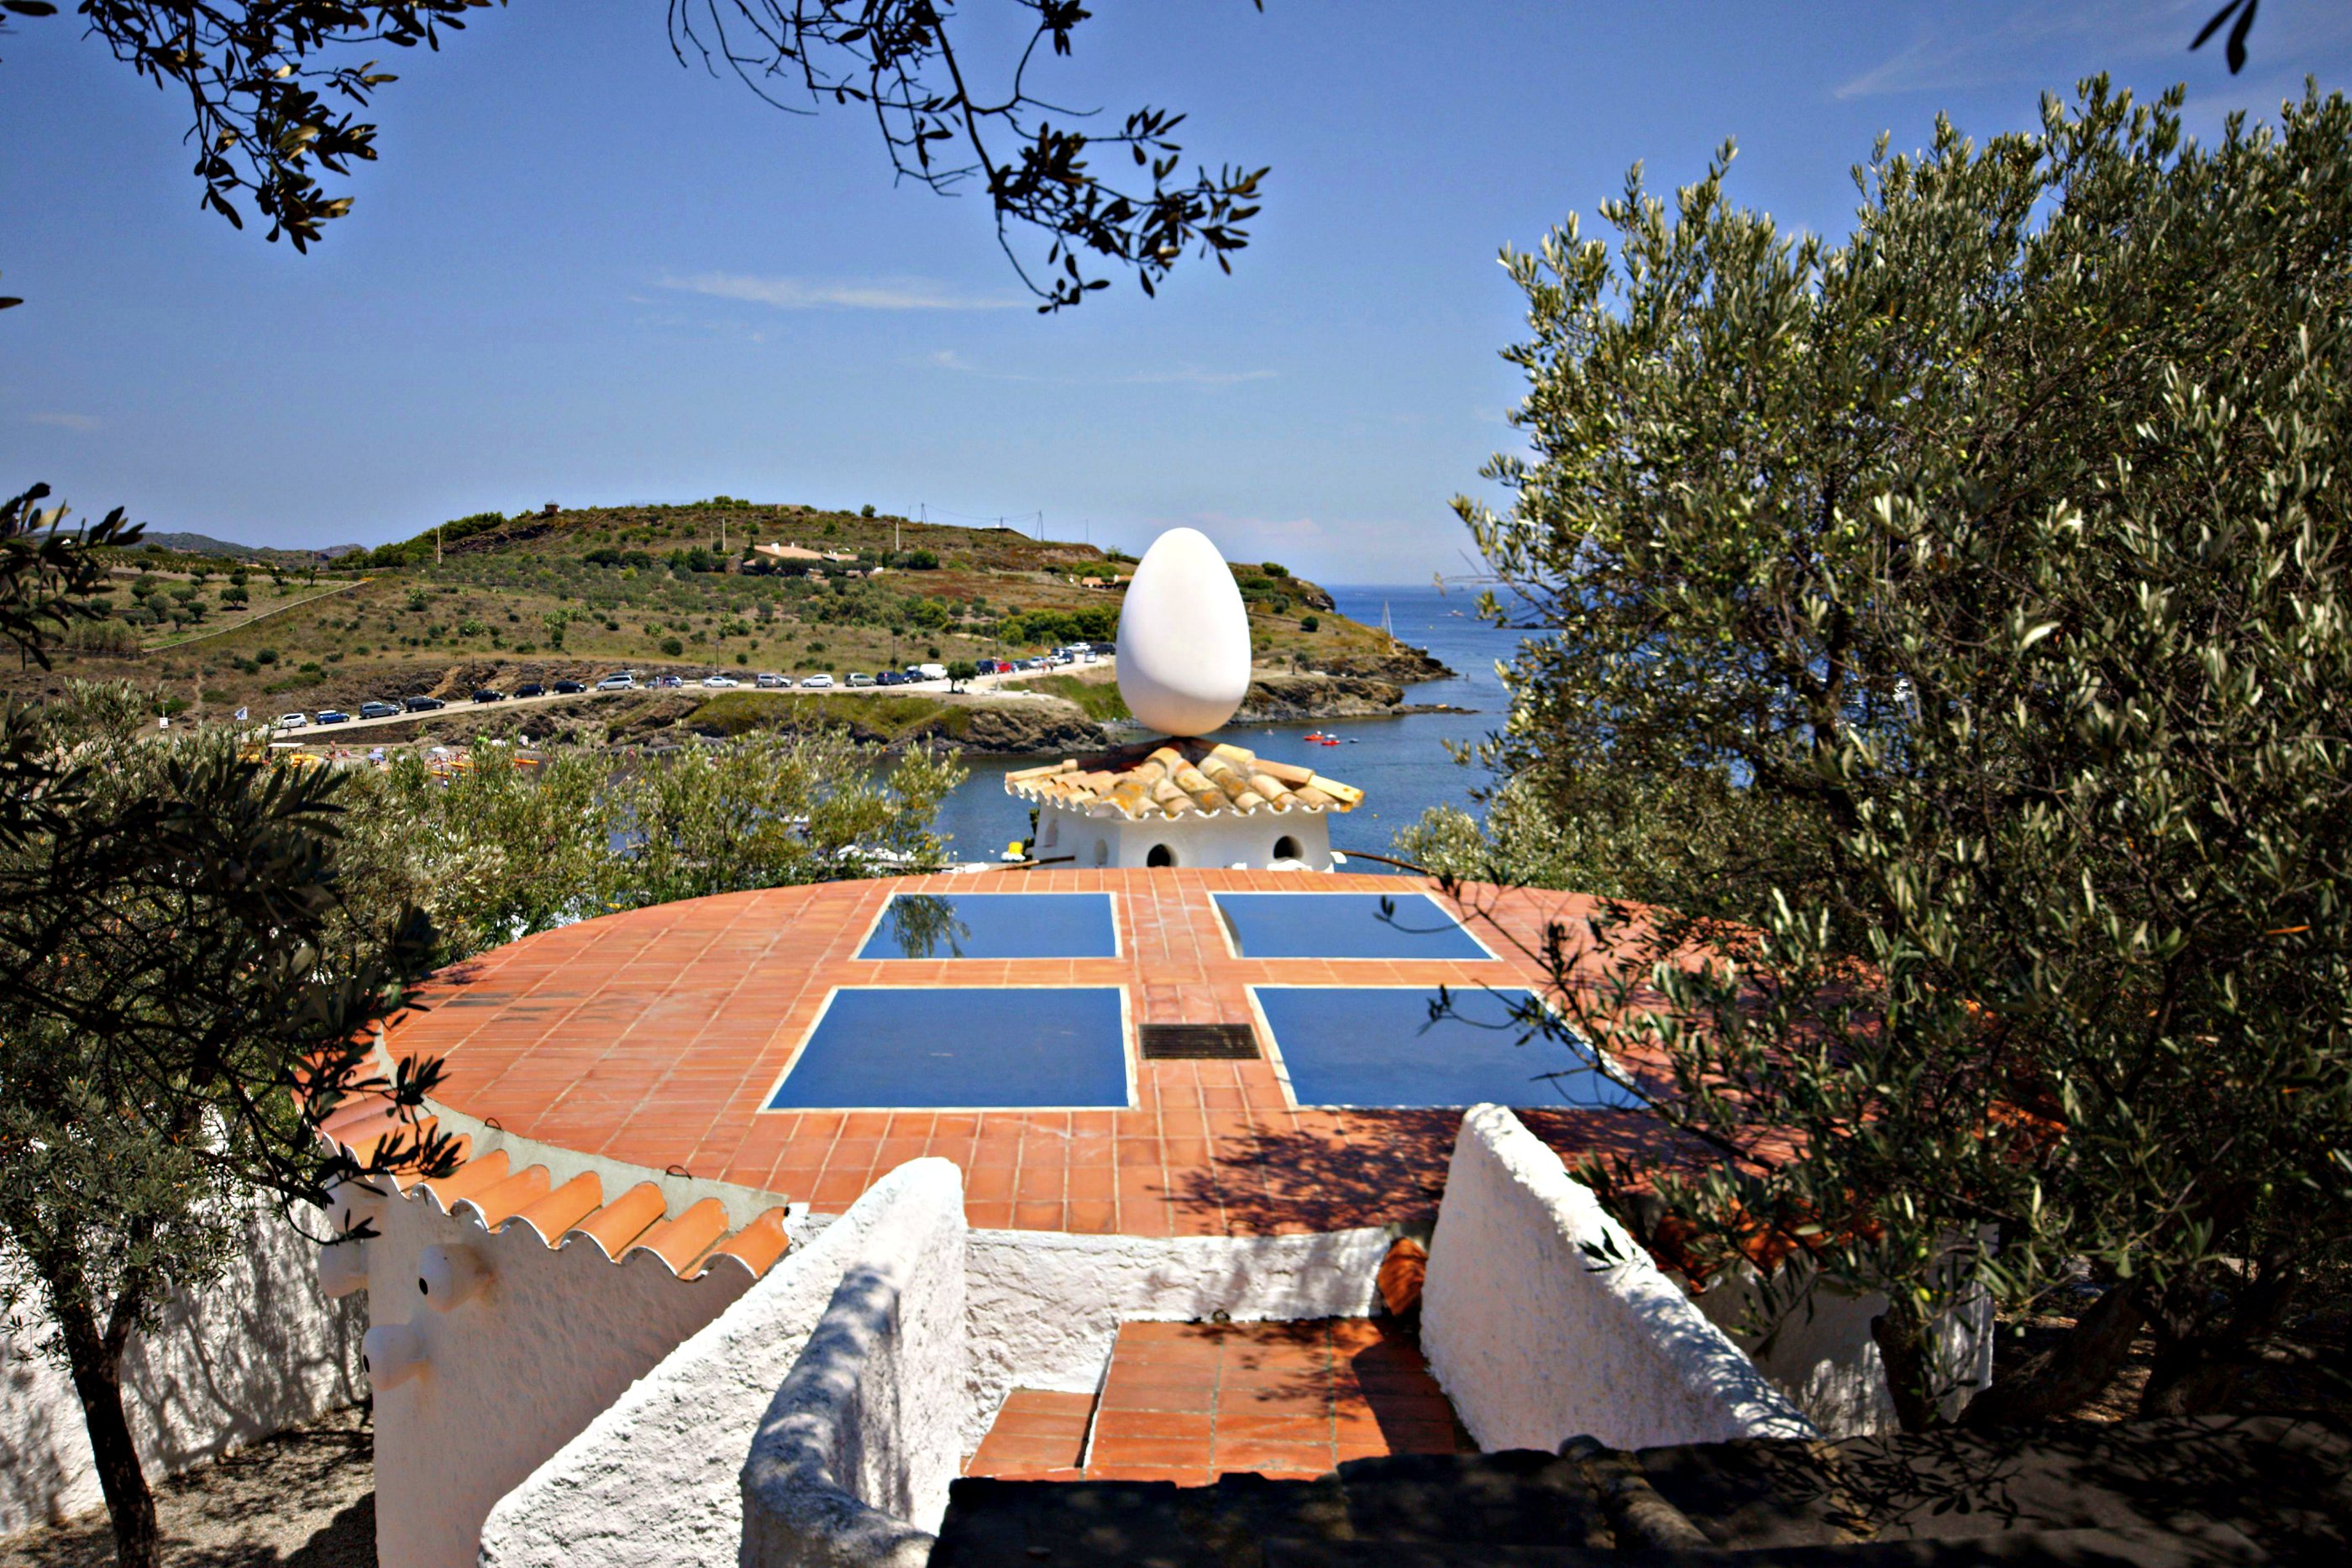 view of egg sculpture from Salvador Dalí's house